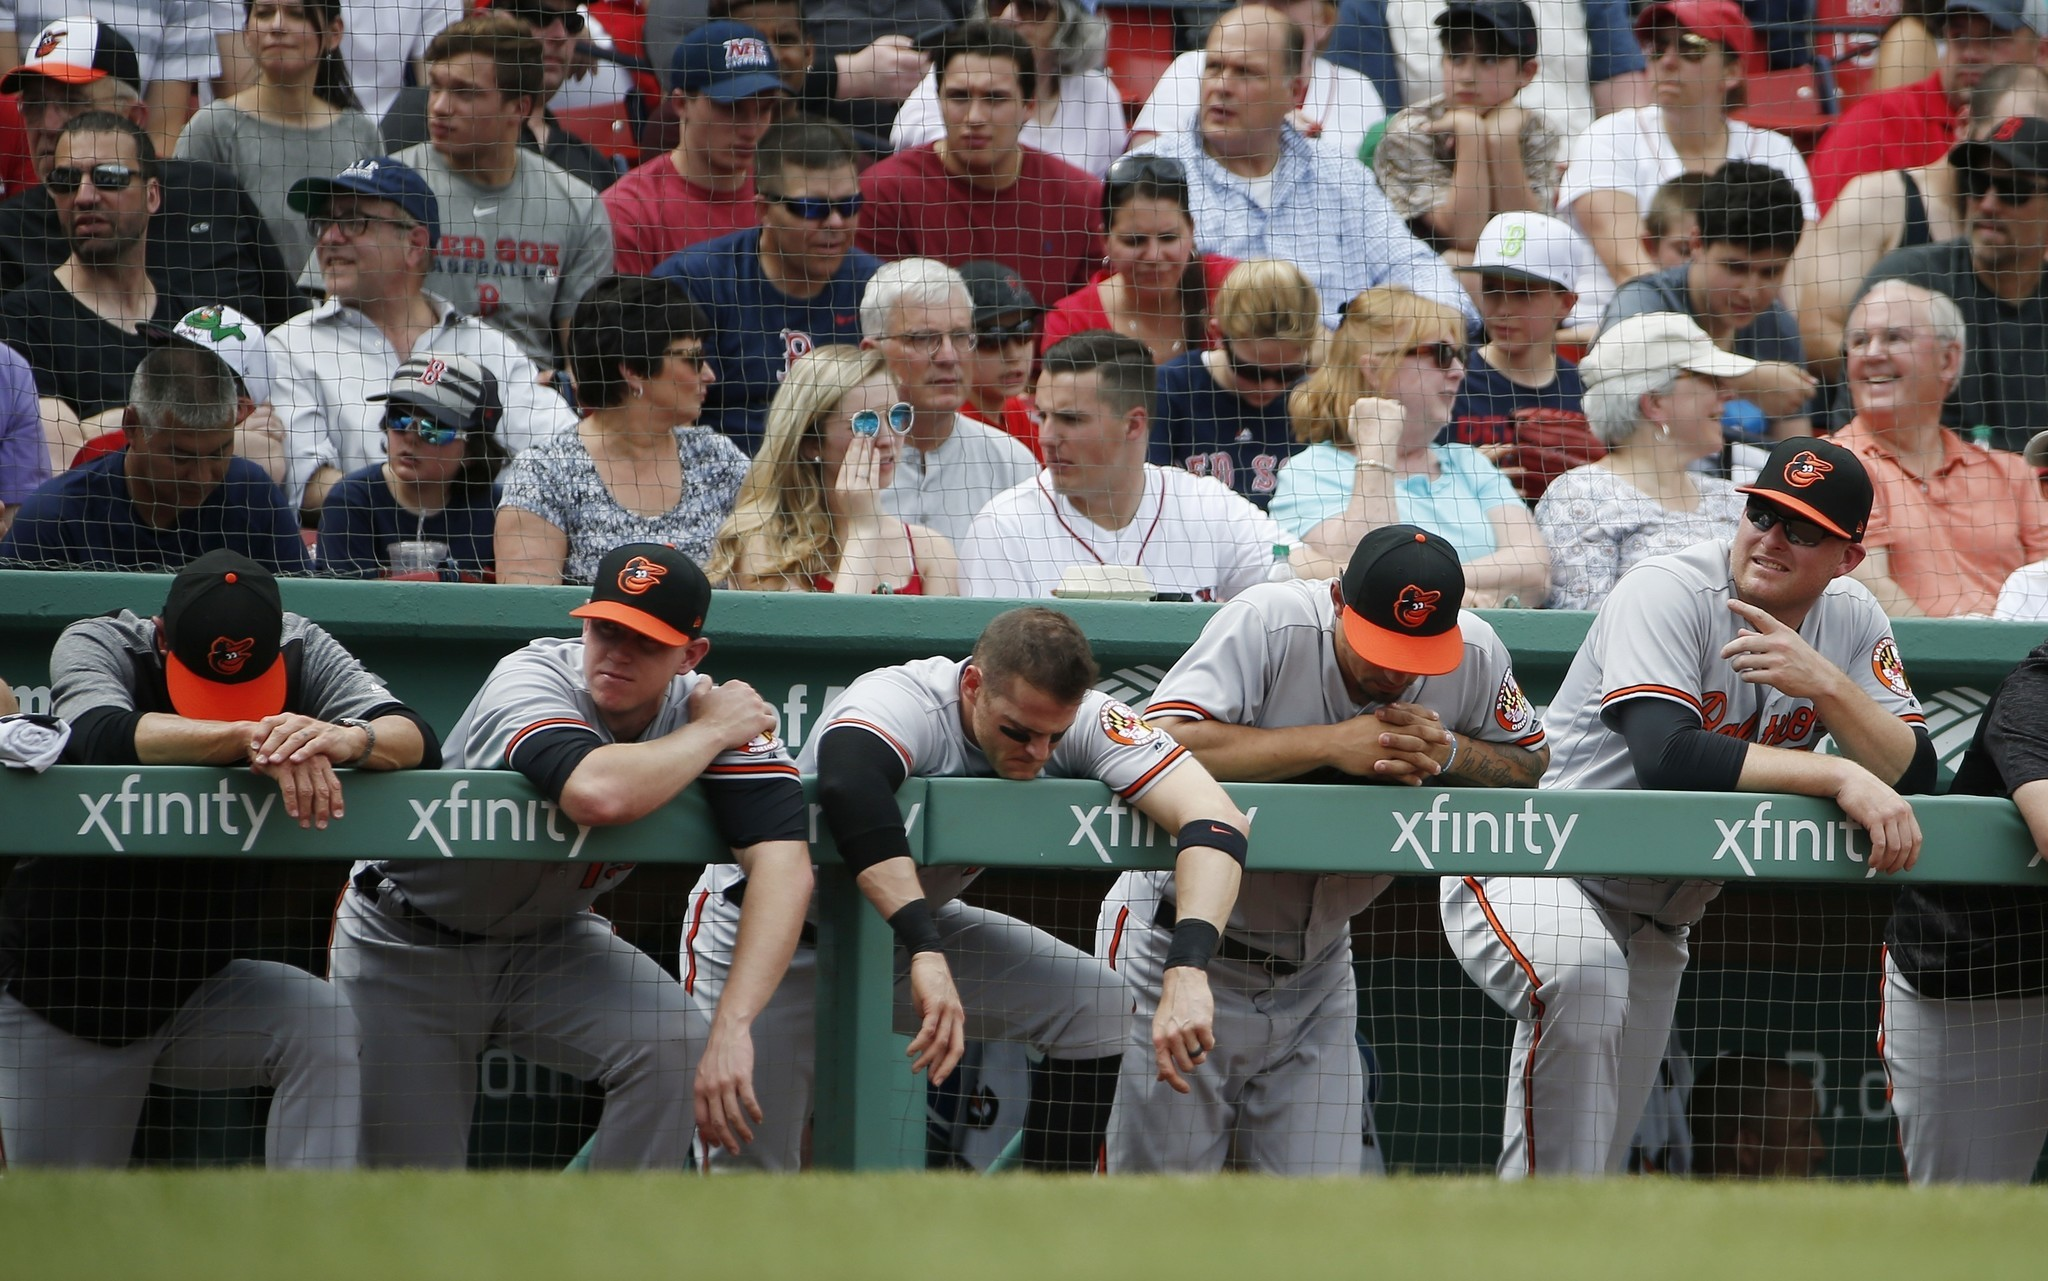 Bal-orioles-rewind-looking-back-at-sunday-s-5-0-loss-to-the-red-sox-20180520